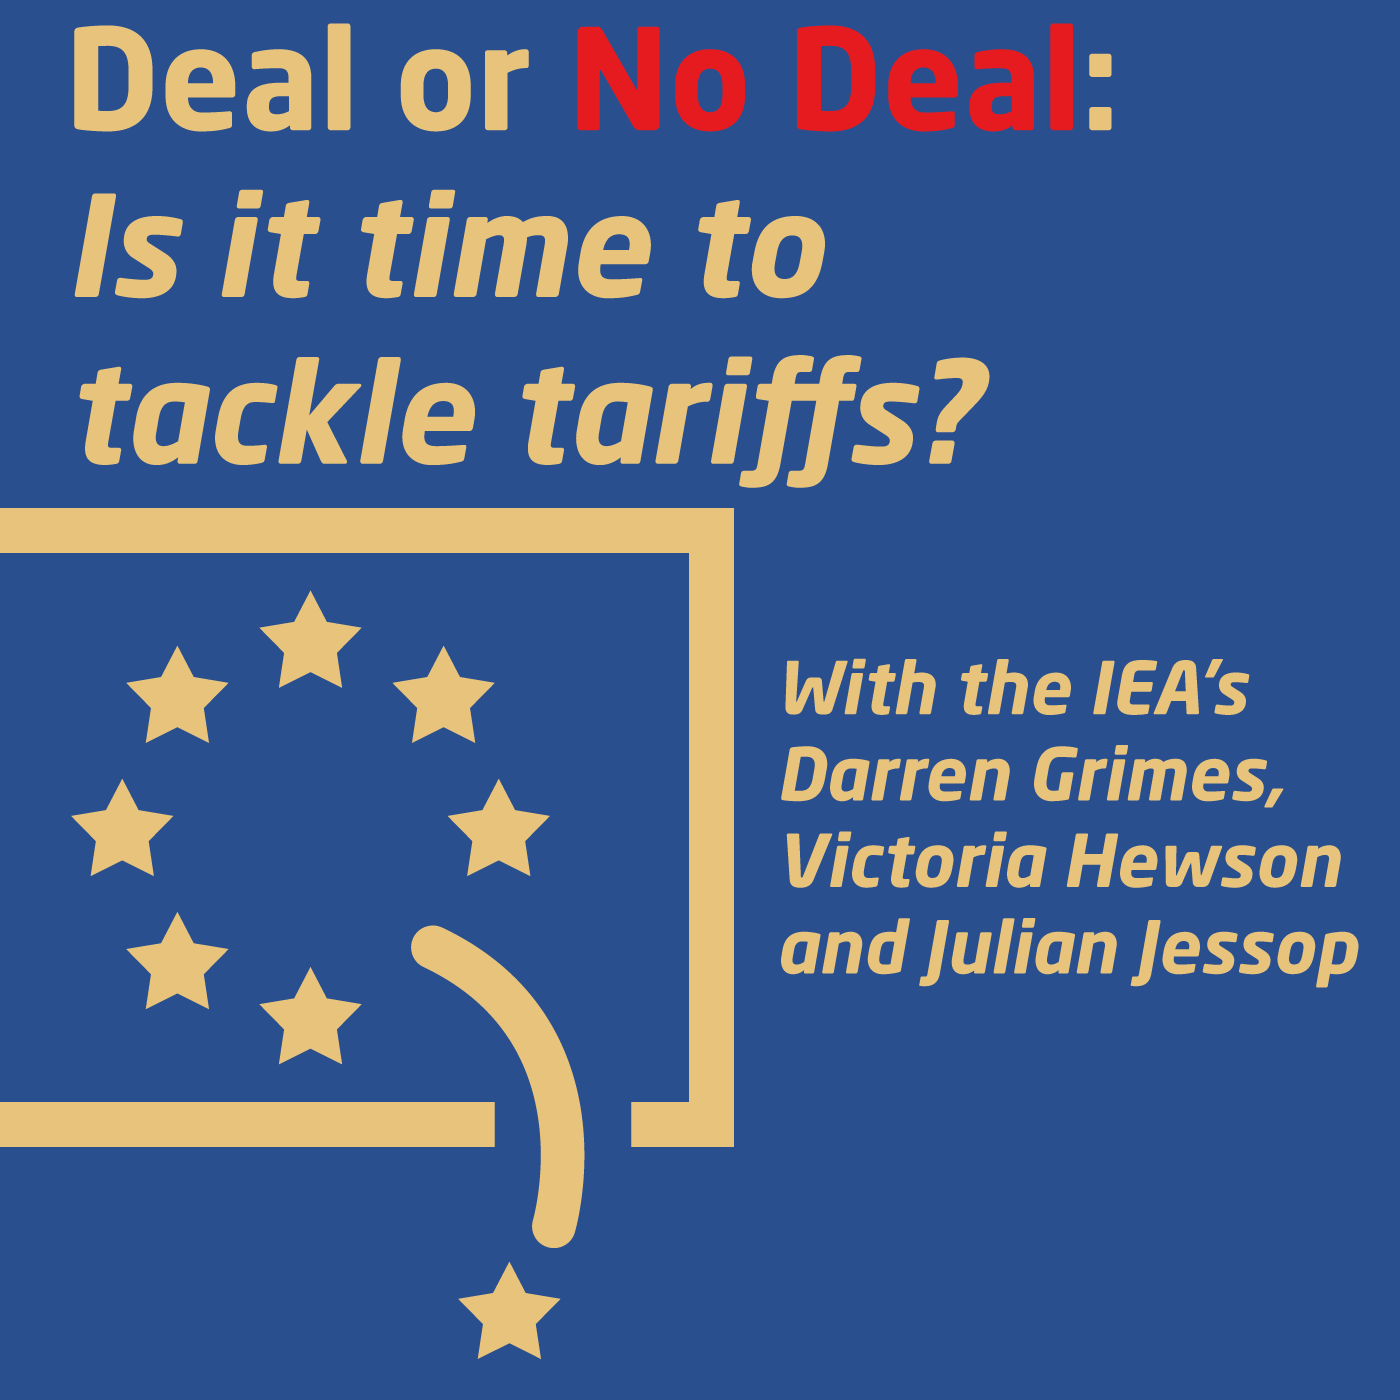 Deal or No Deal: Is it time to tackle tariffs?